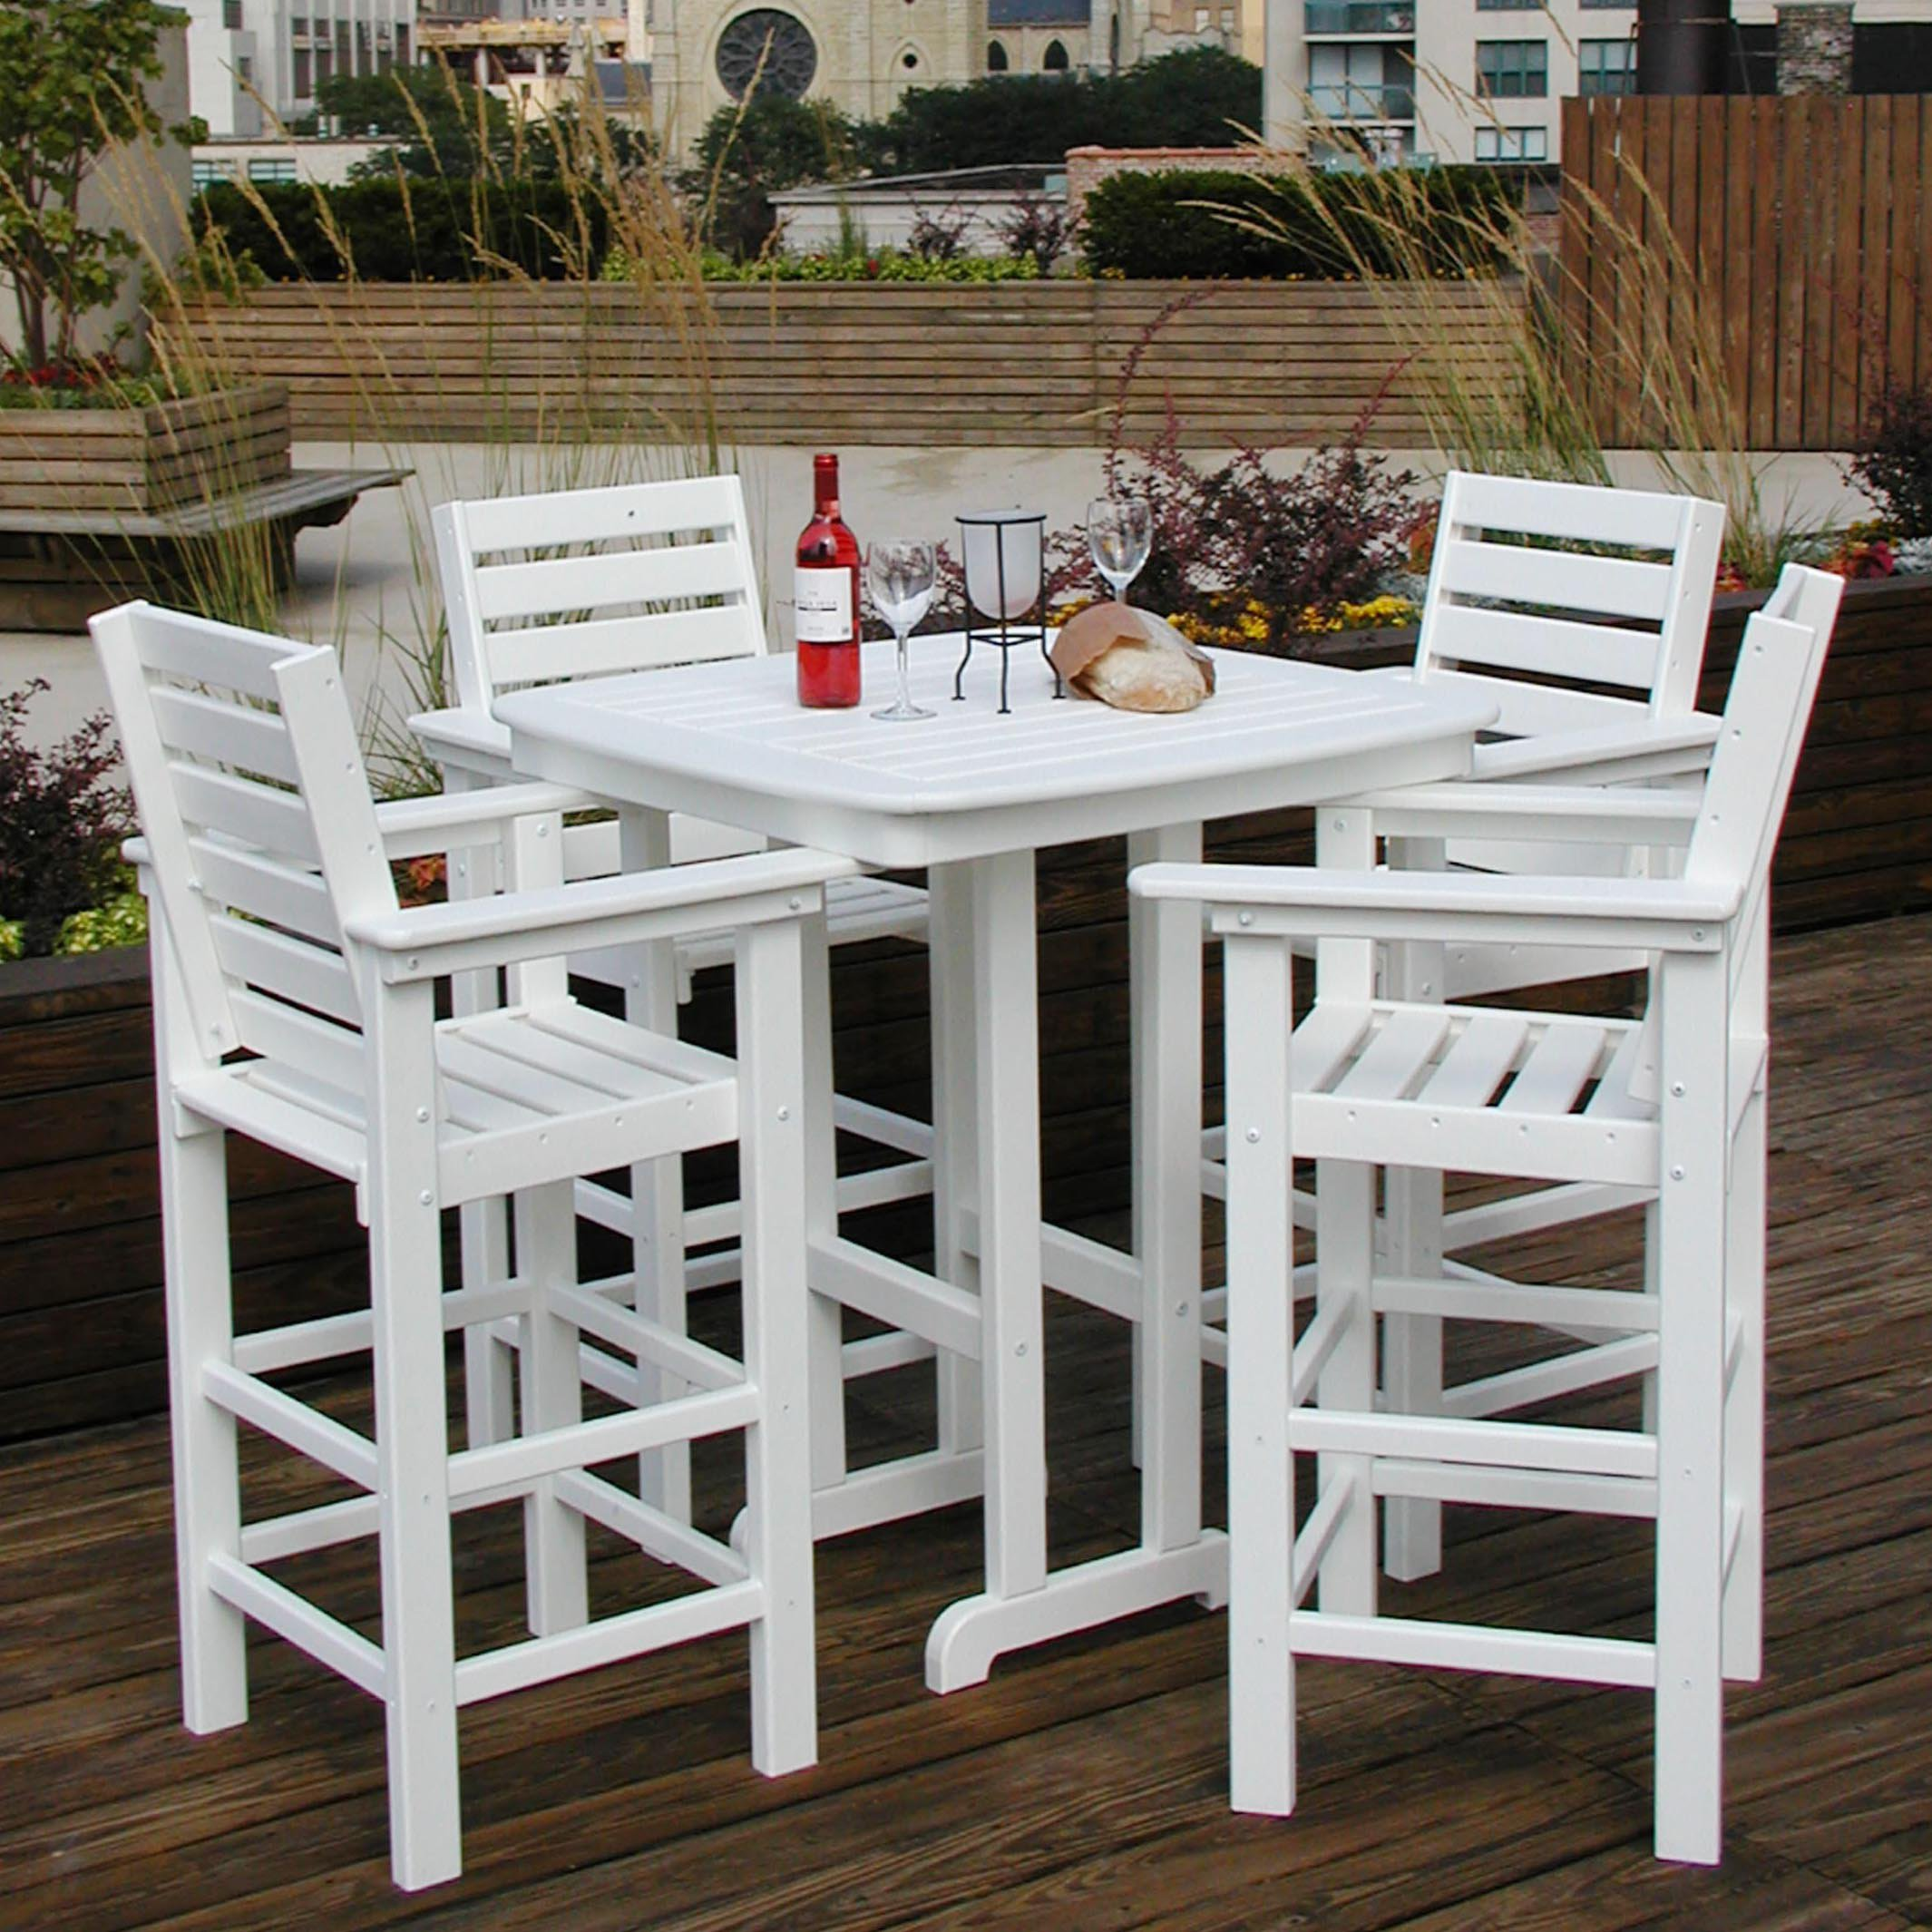 POLYWOODu0026reg; Captain 5 Pc. Recycled Plastic Bar Height Dining Set    Walmart.com